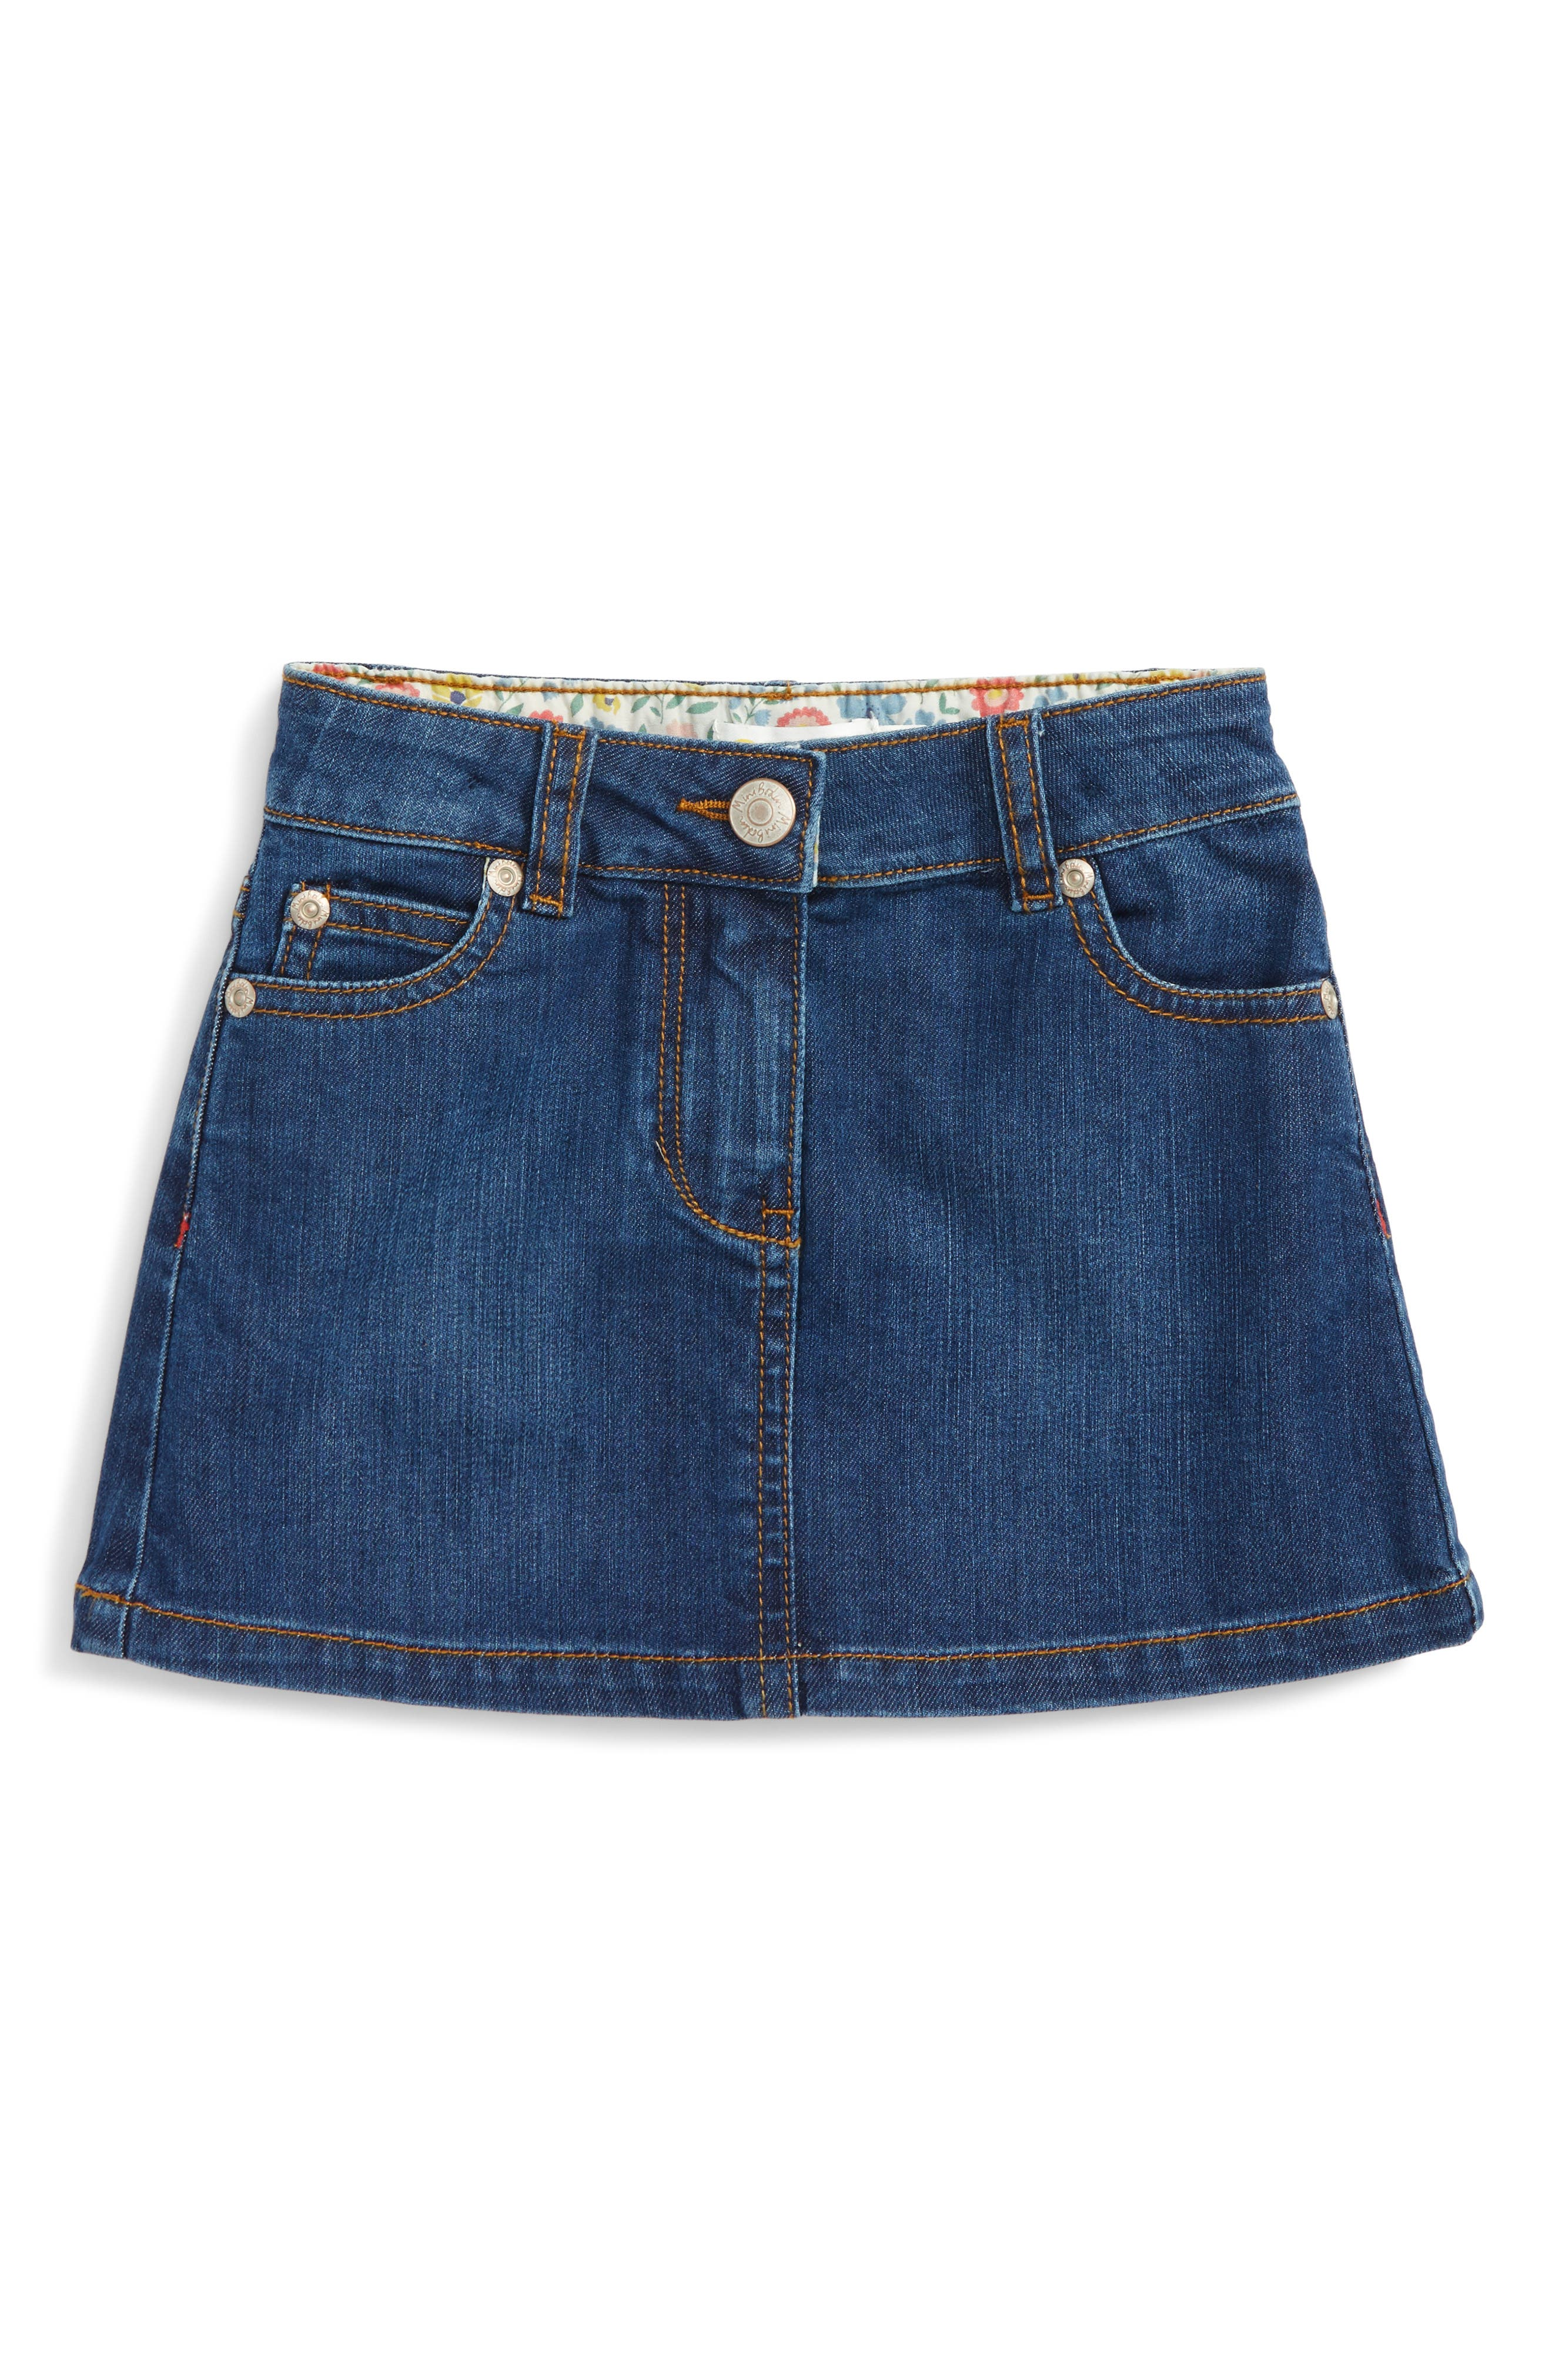 Heart Pocket Denim Skirt,                         Main,                         color, Blue Vintage